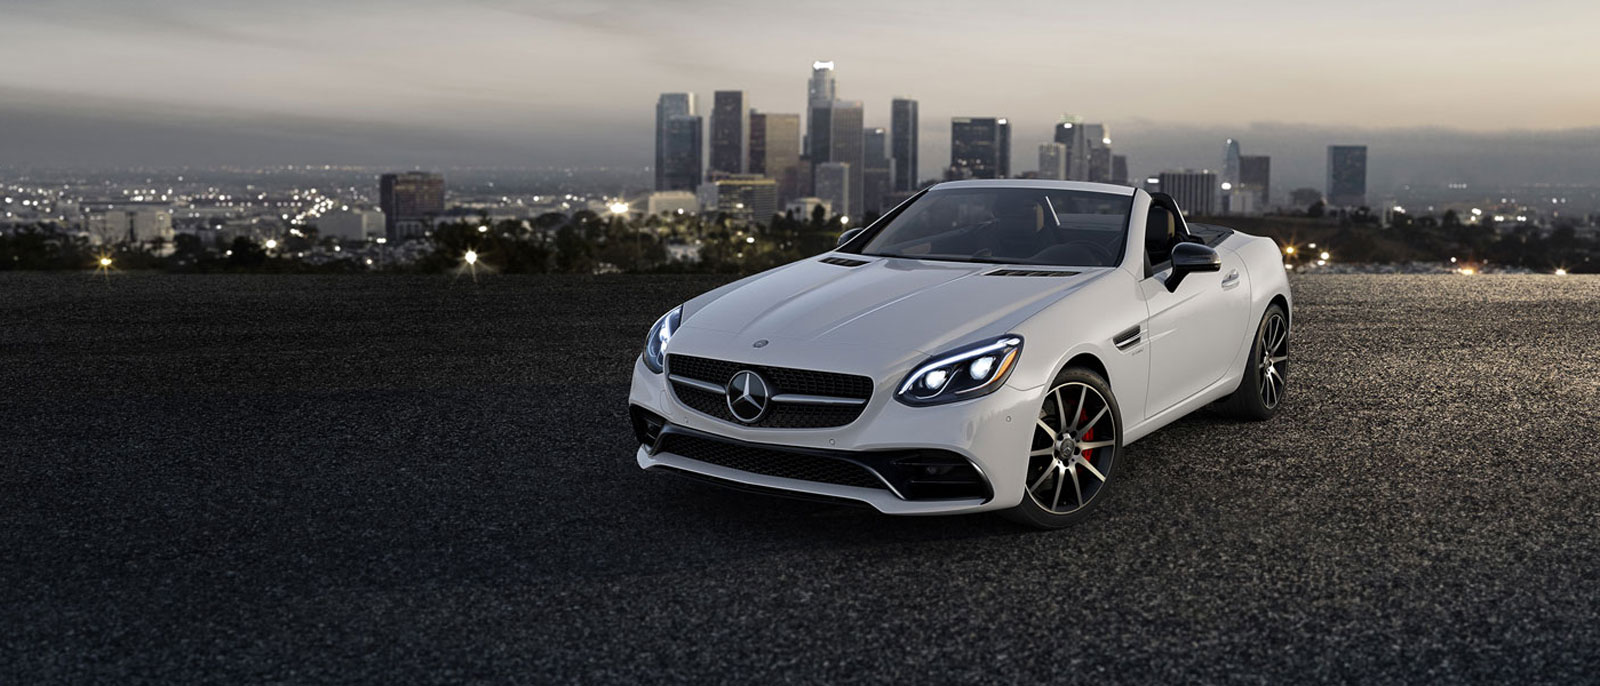 Experience the new 2017 mercedes benz slc300 roadster for Mercedes benz rbm